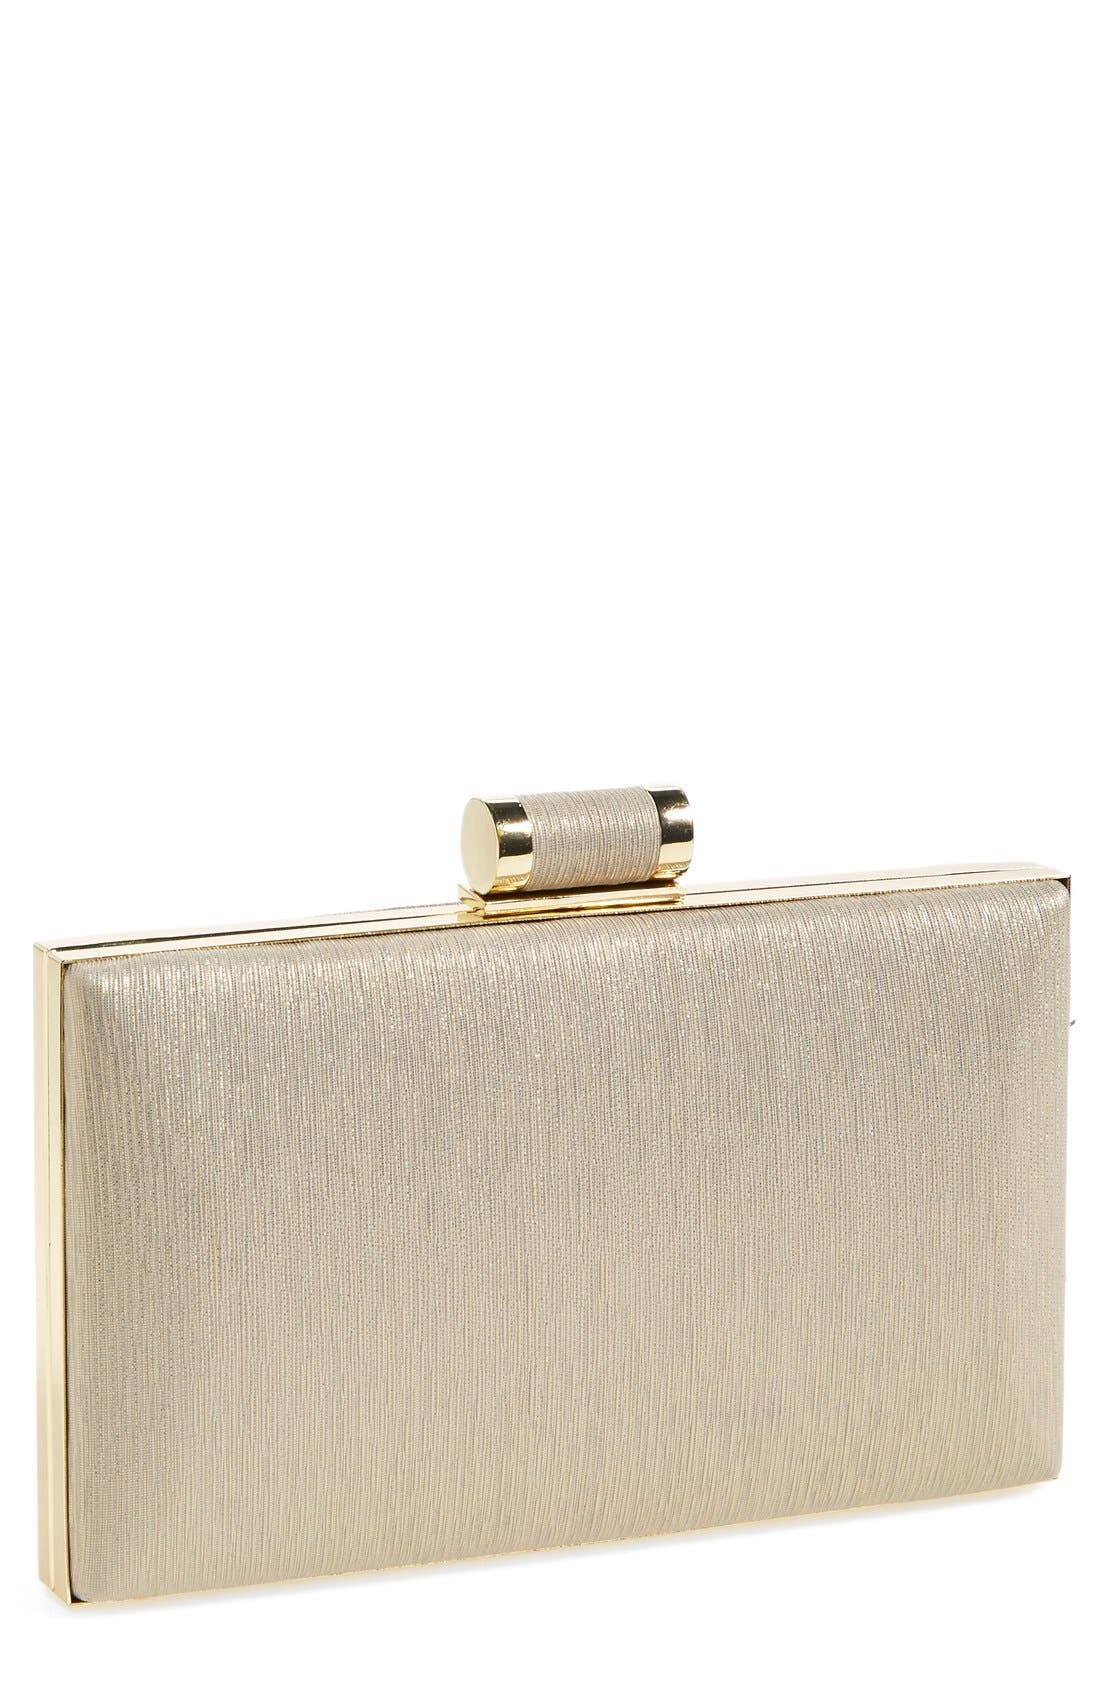 Alternate Image 1 Selected - Ivanka Trump Faux Leather Minaudiere Clutch